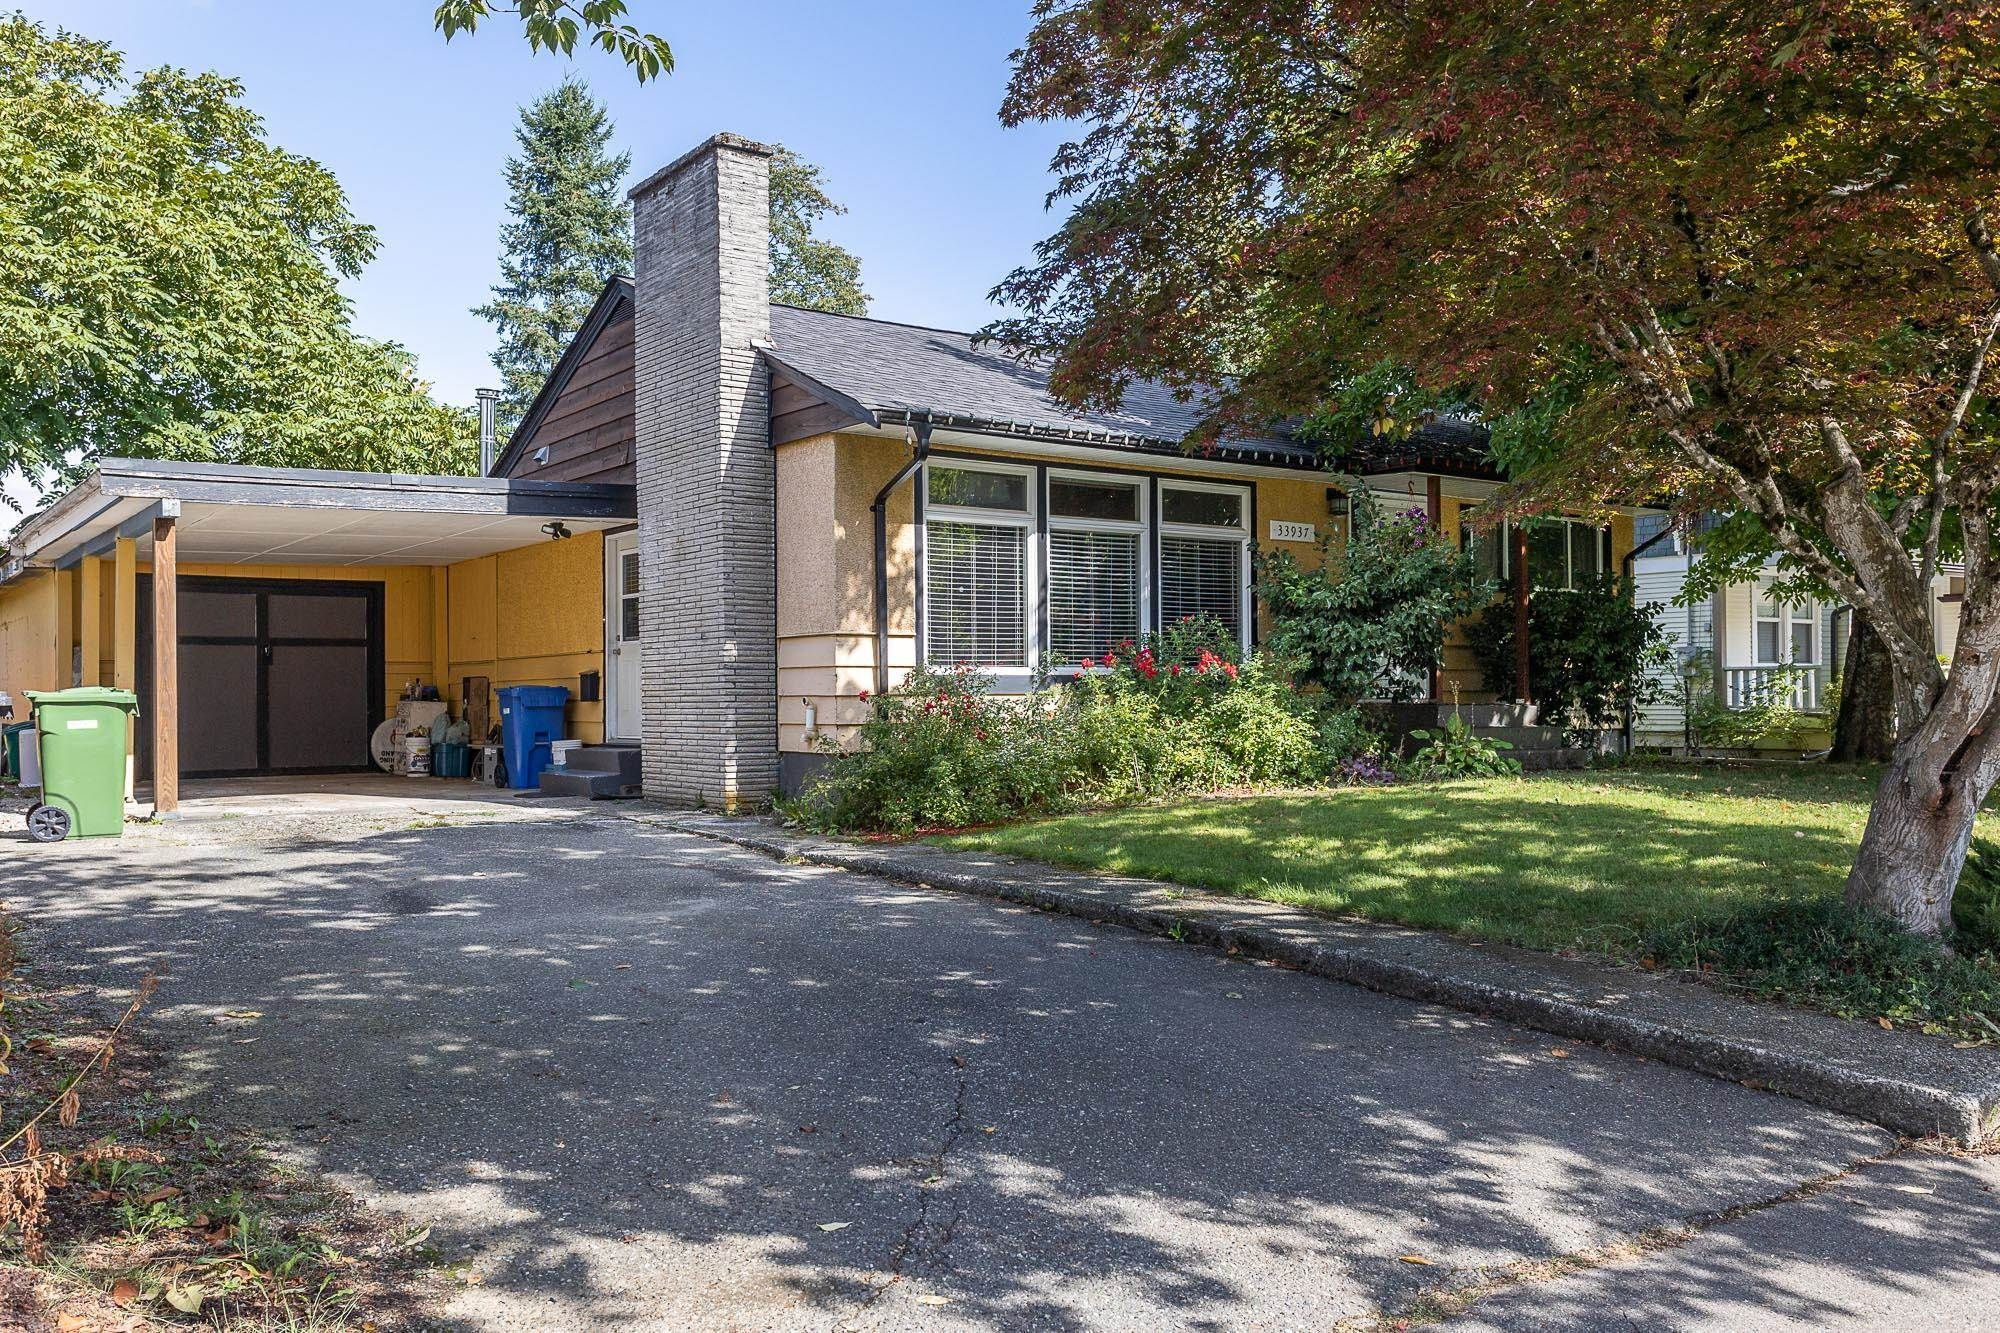 Main Photo: 33937 VICTORY Boulevard in Abbotsford: Central Abbotsford House for sale : MLS®# R2619696